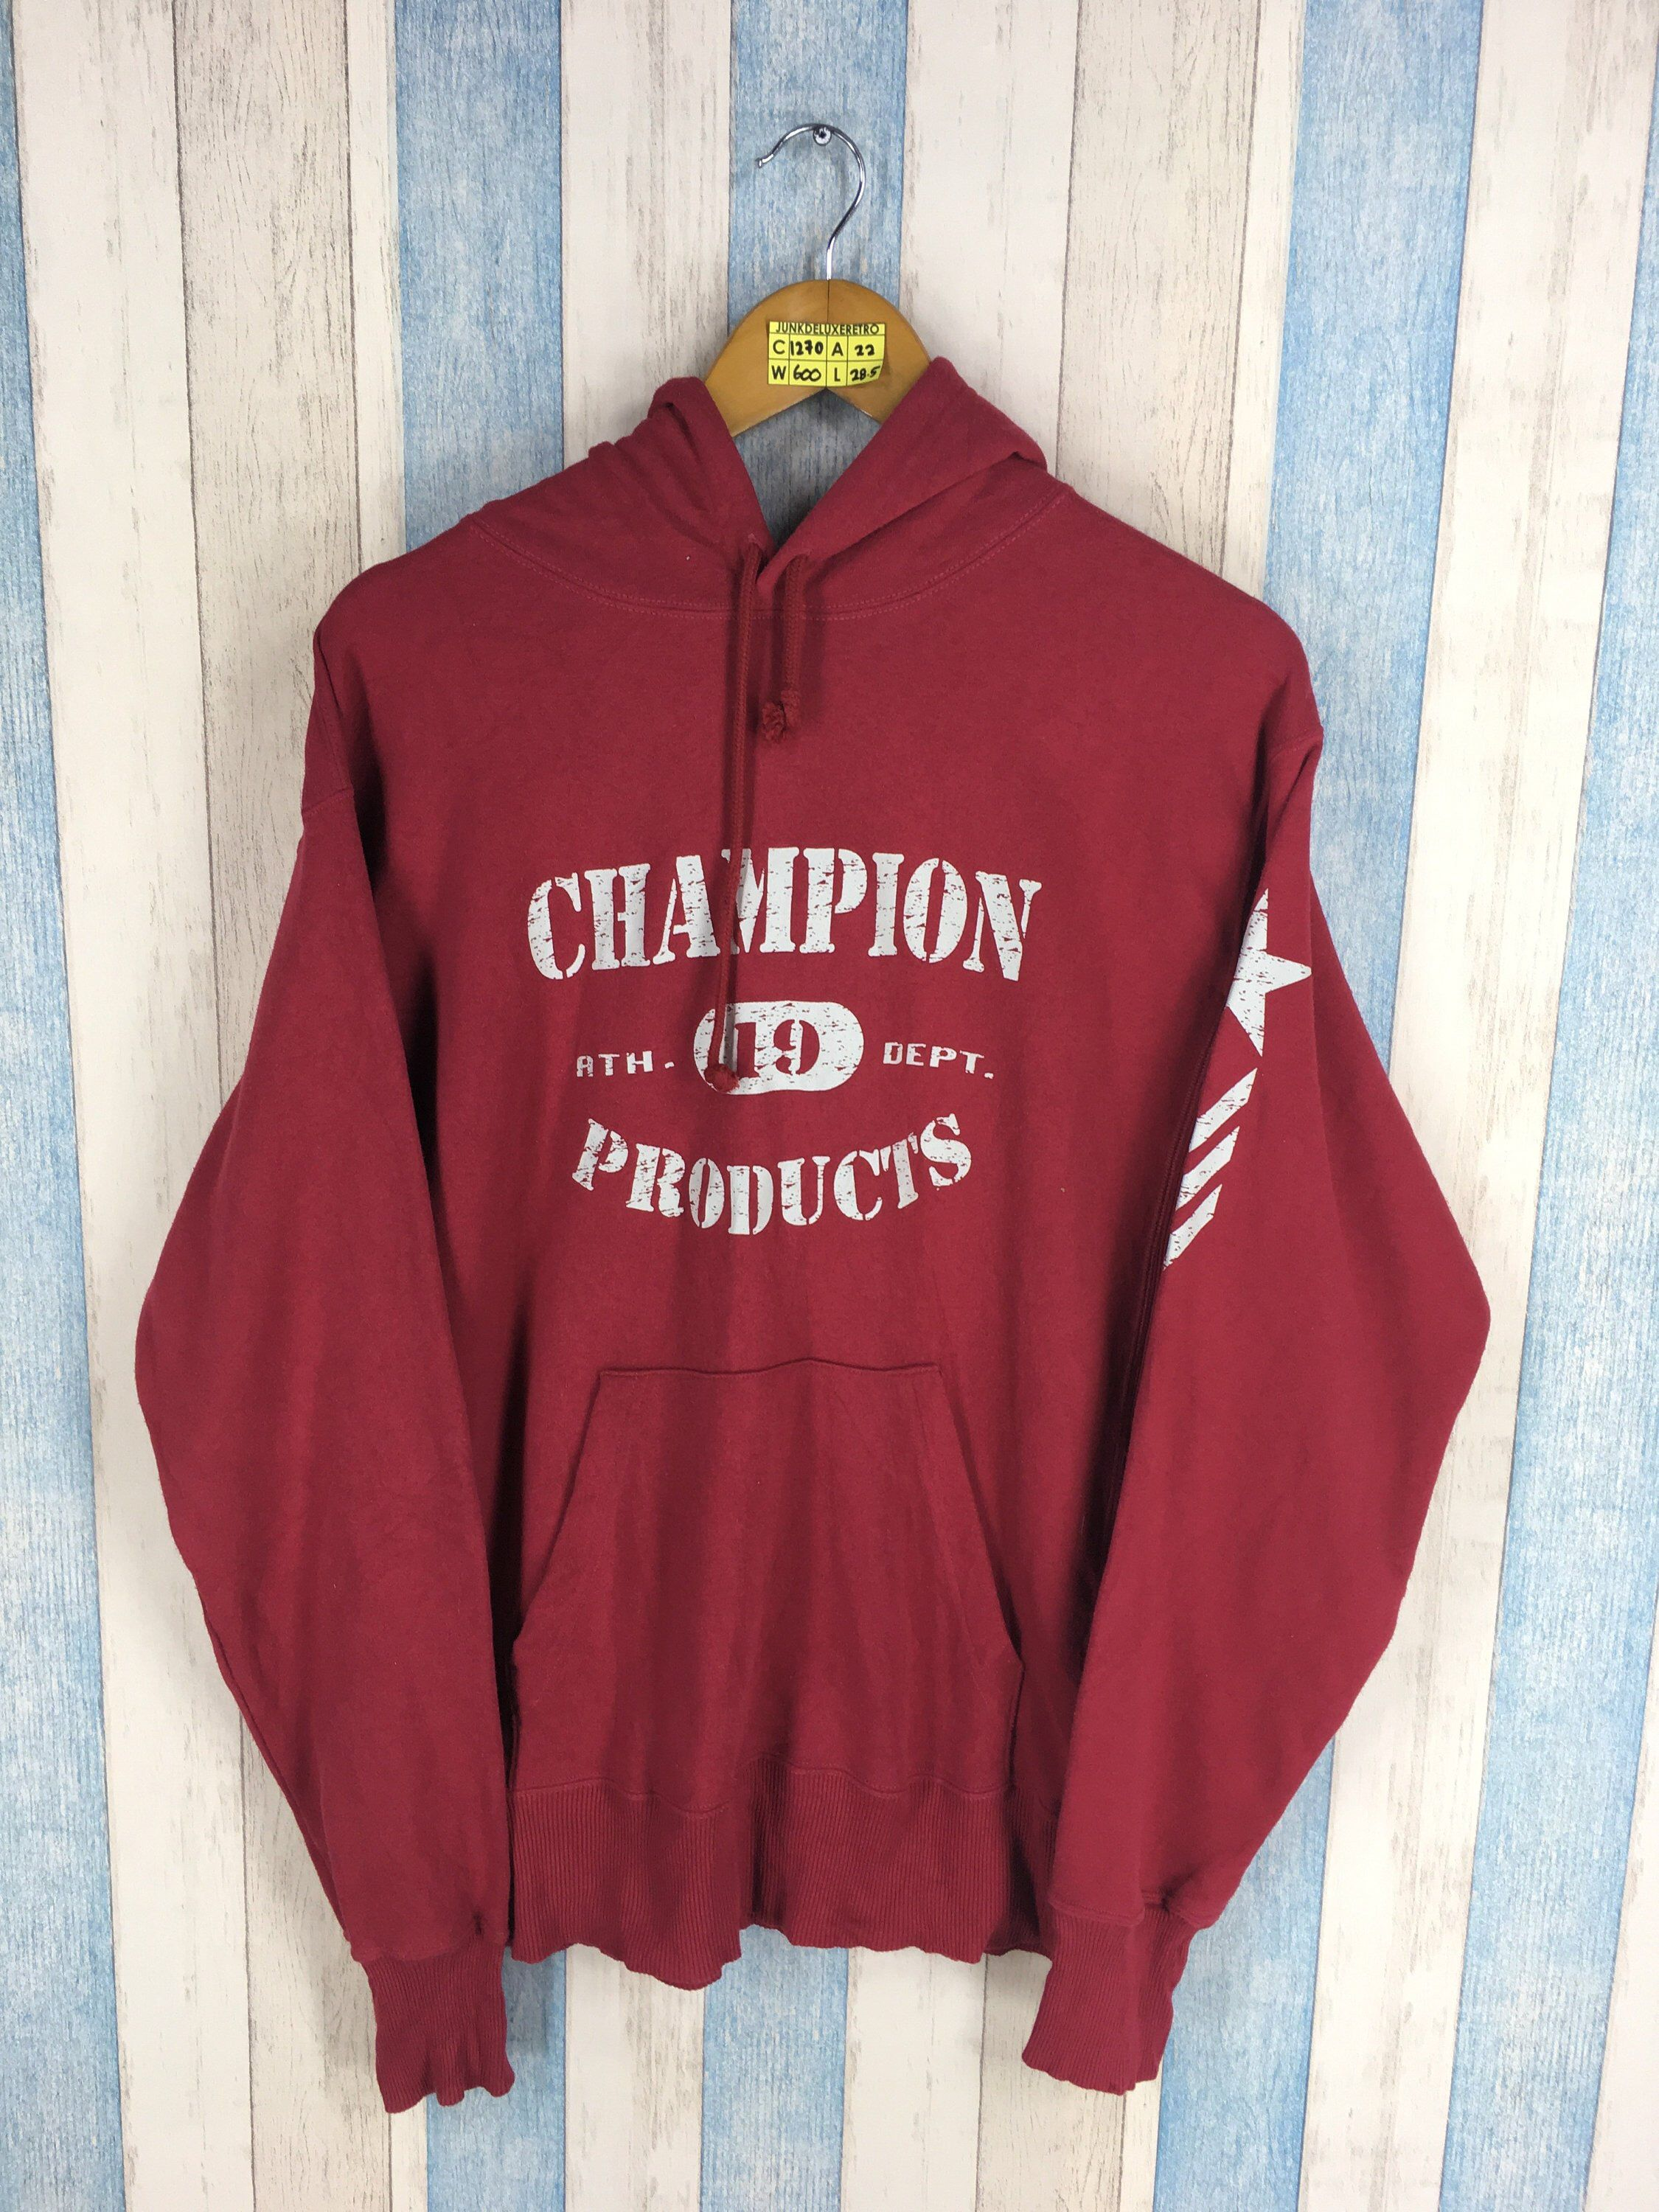 1e562bc0b4e8 CHAMPION PRODUCTS Hoodies Sweatshirt Unisex Medium Red Vintage 90s  Sportswear Swag Champion Usa Jacket Pullover Sweater Size M